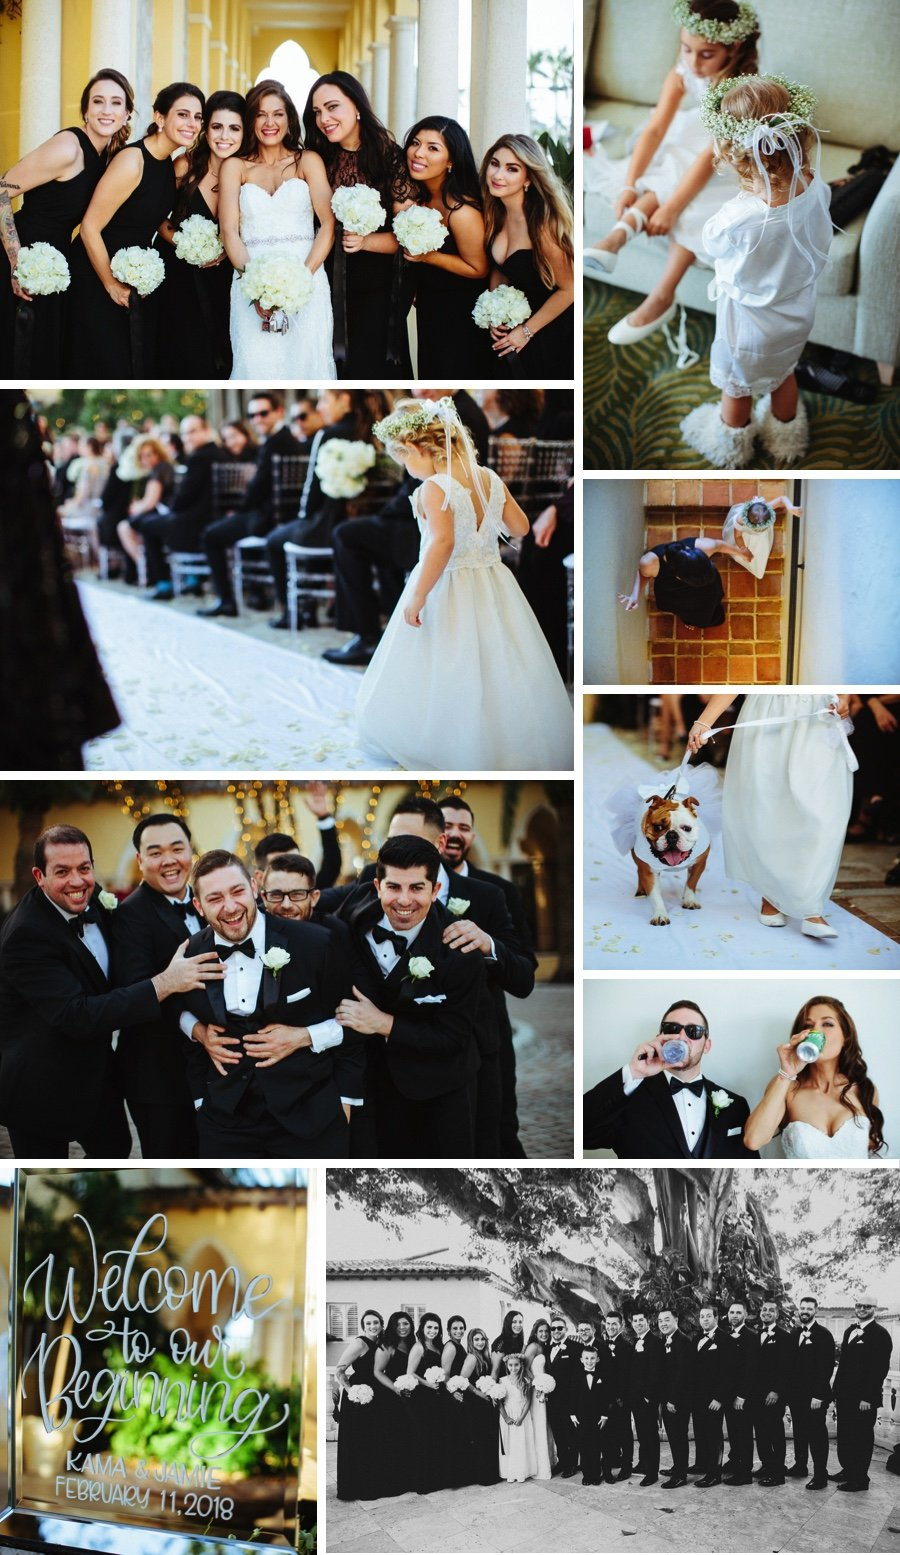 Real wedding: White florals and a furry friend